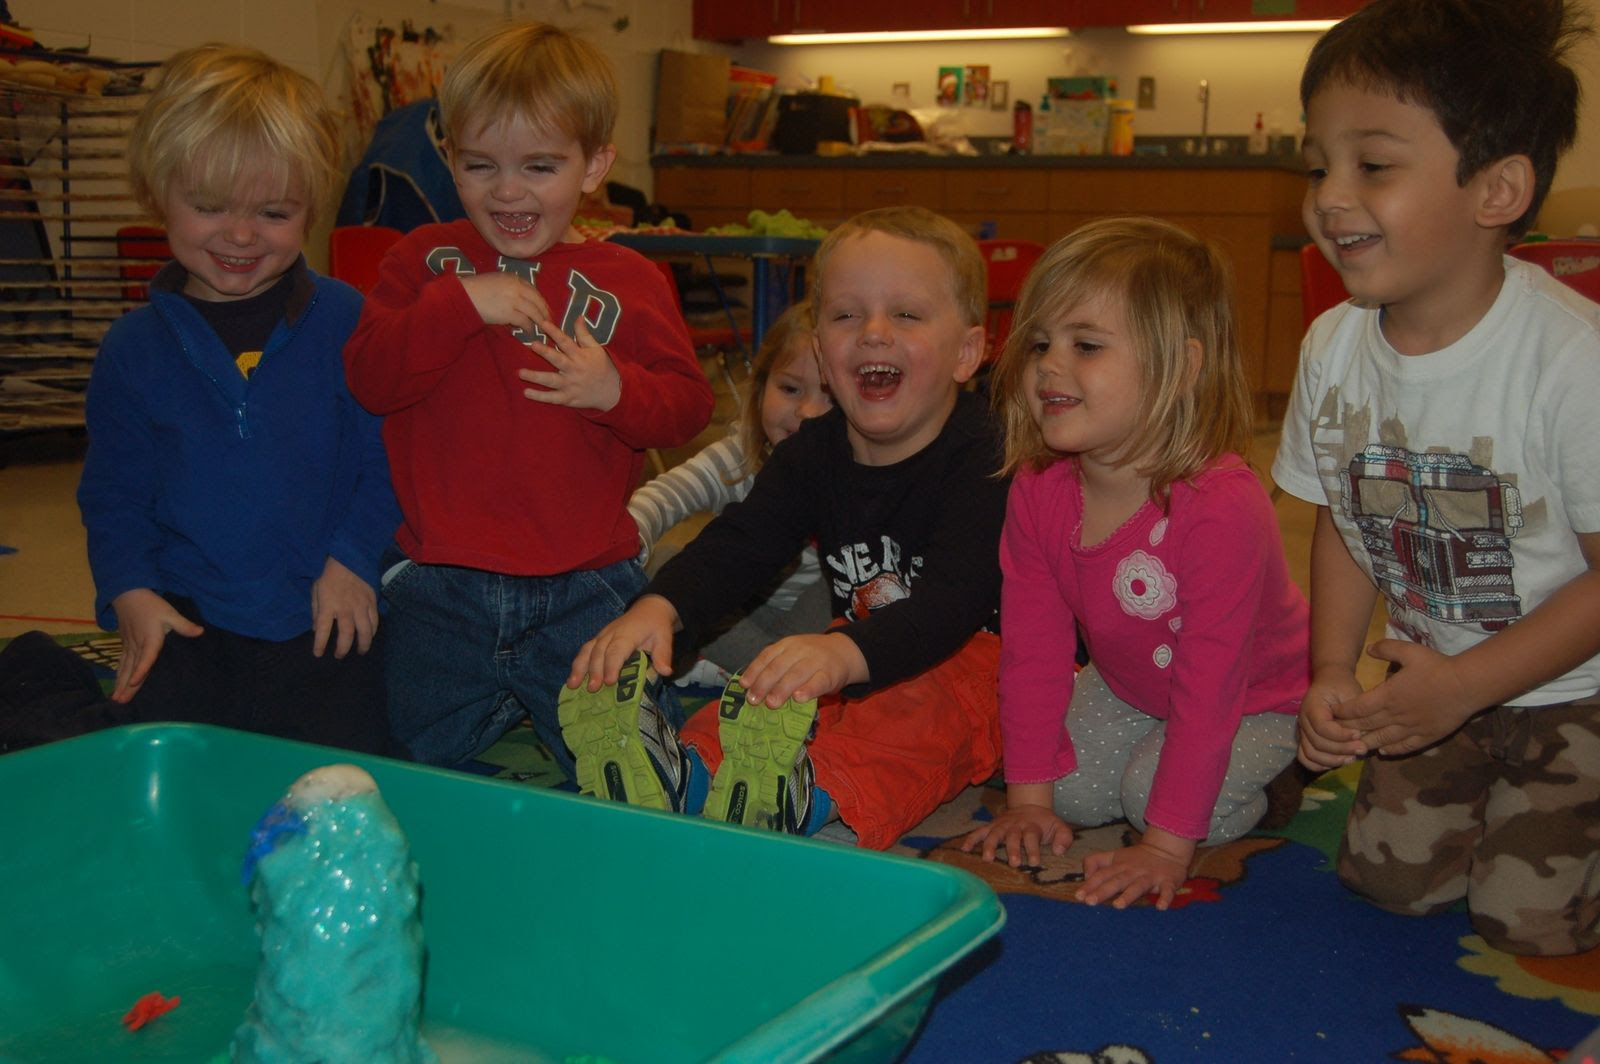 photo preschool19_zps0df72c13.jpg